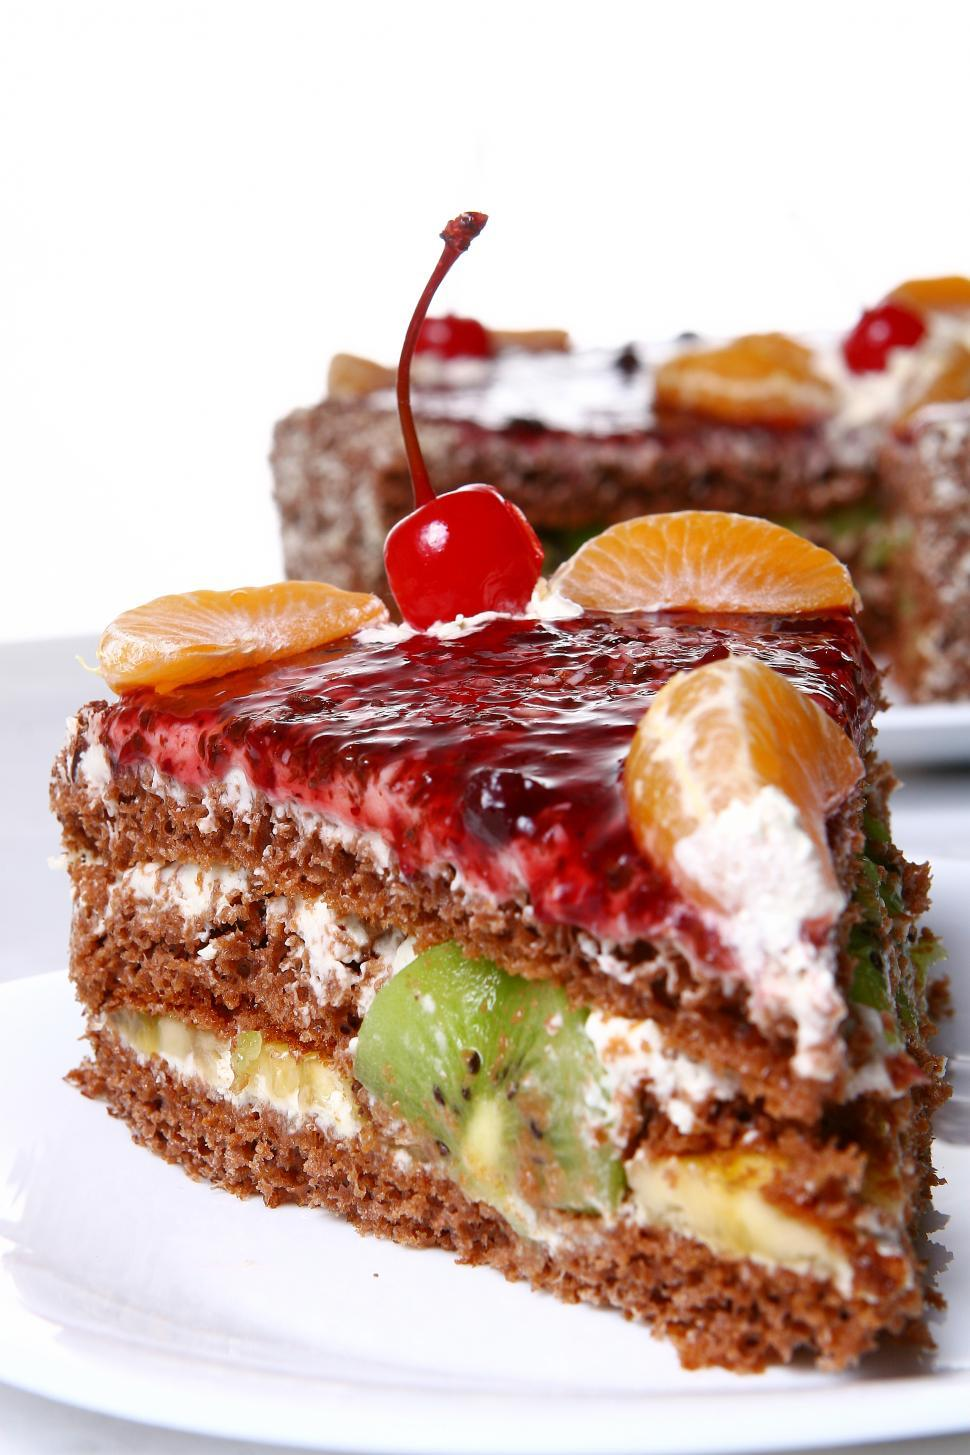 Download Free Stock HD Photo of cake with desert cherry Online